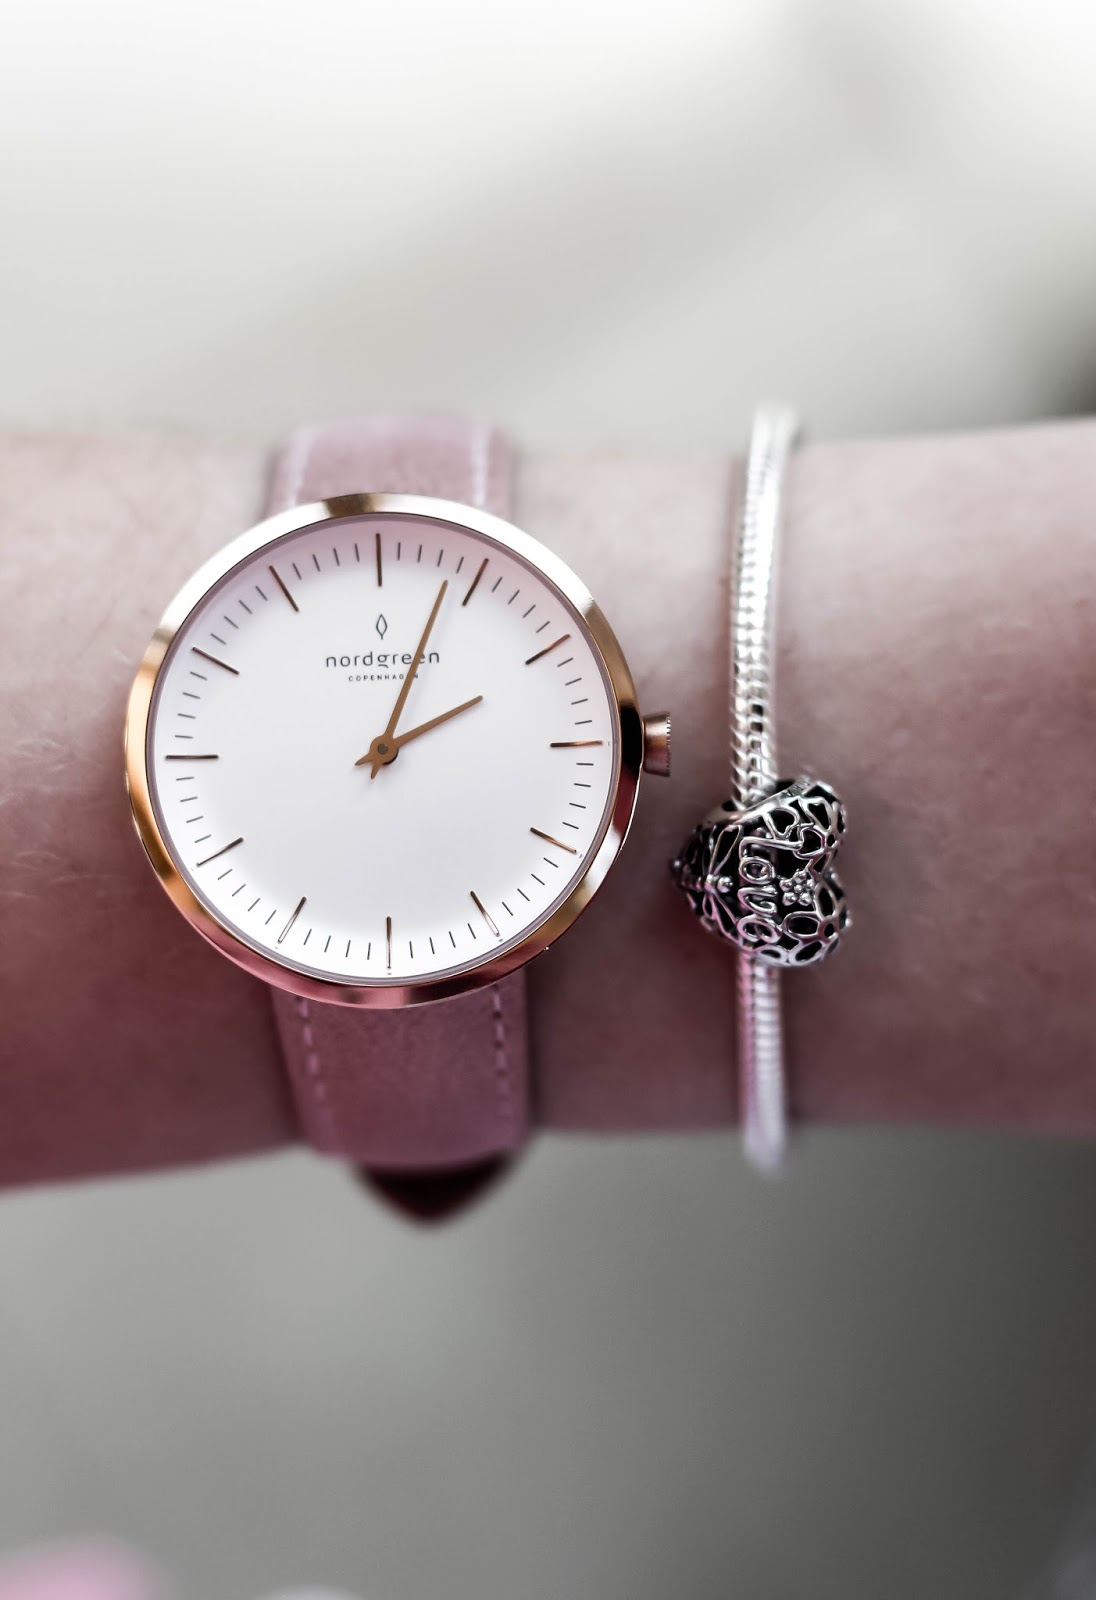 Nordgreen Infinity Pink Rose Gold Watch Fashion Blog Review